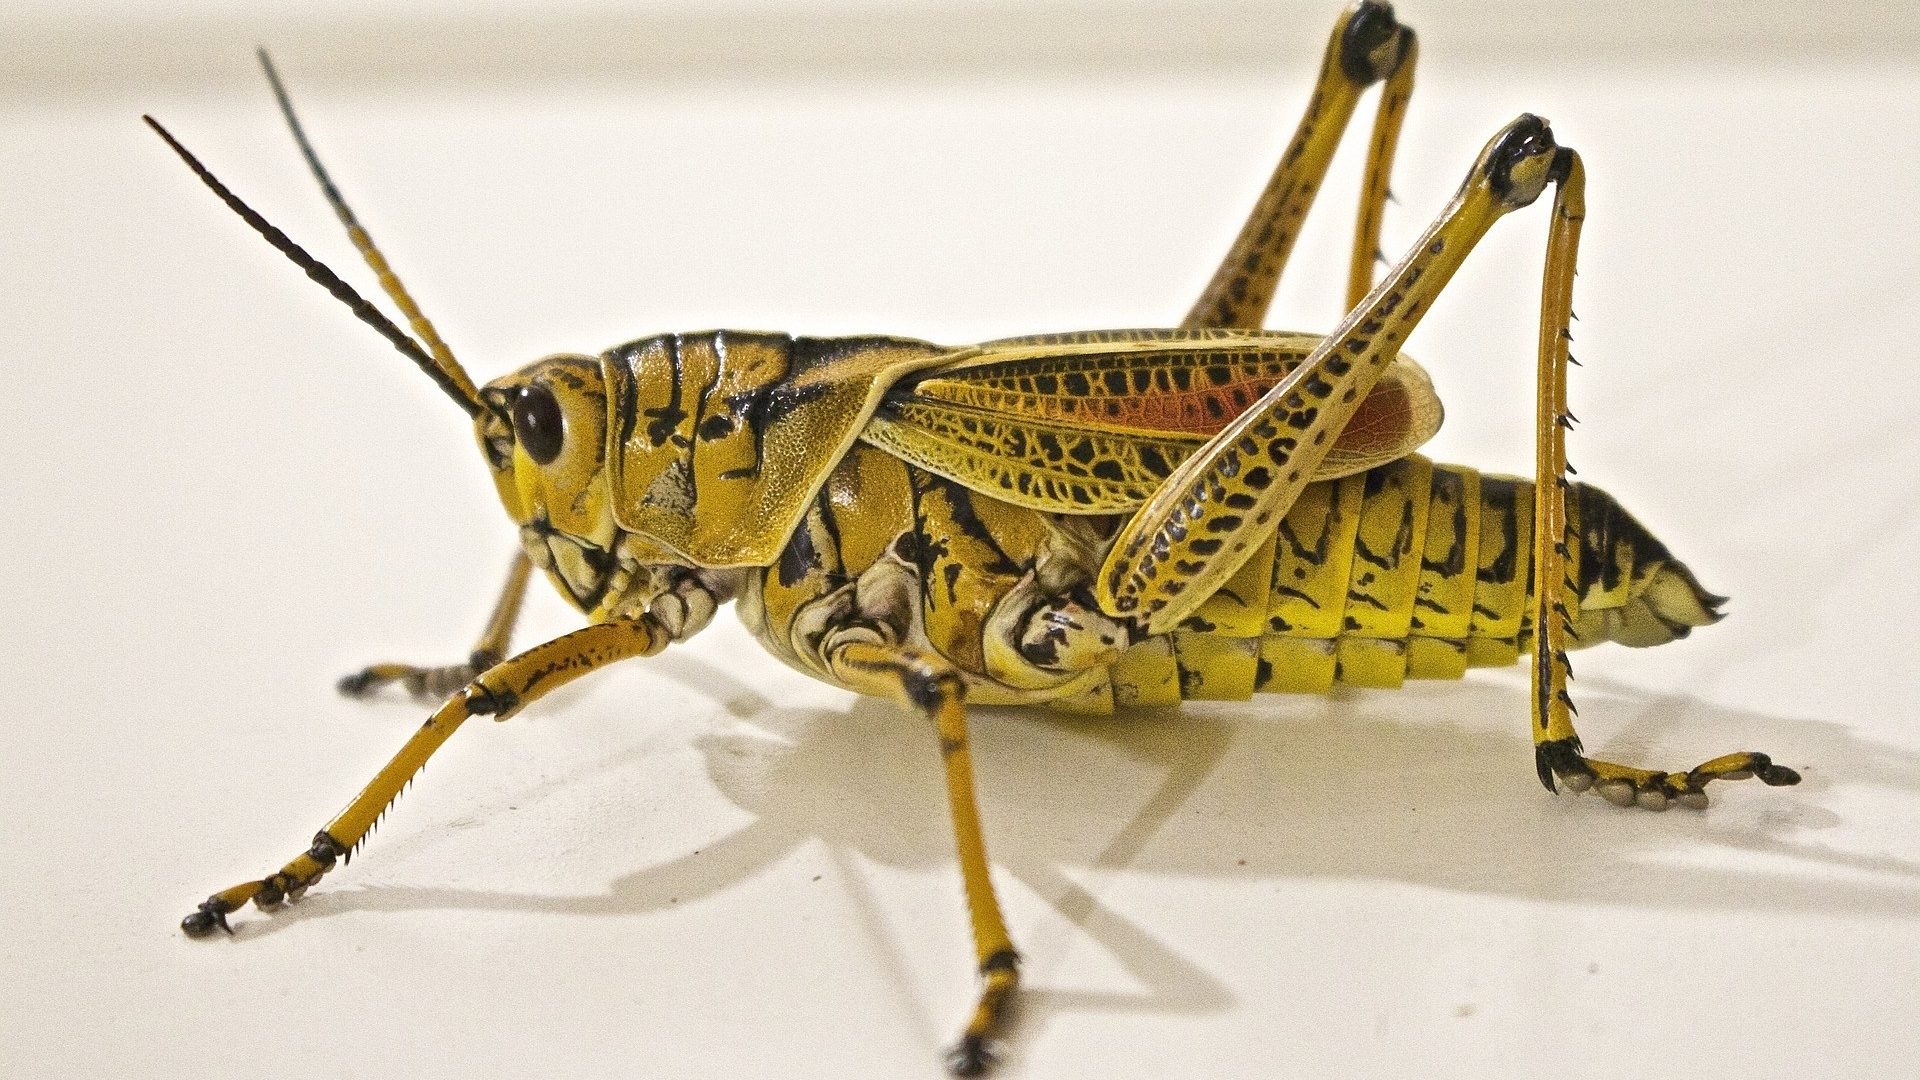 Close up of a locust on a white background